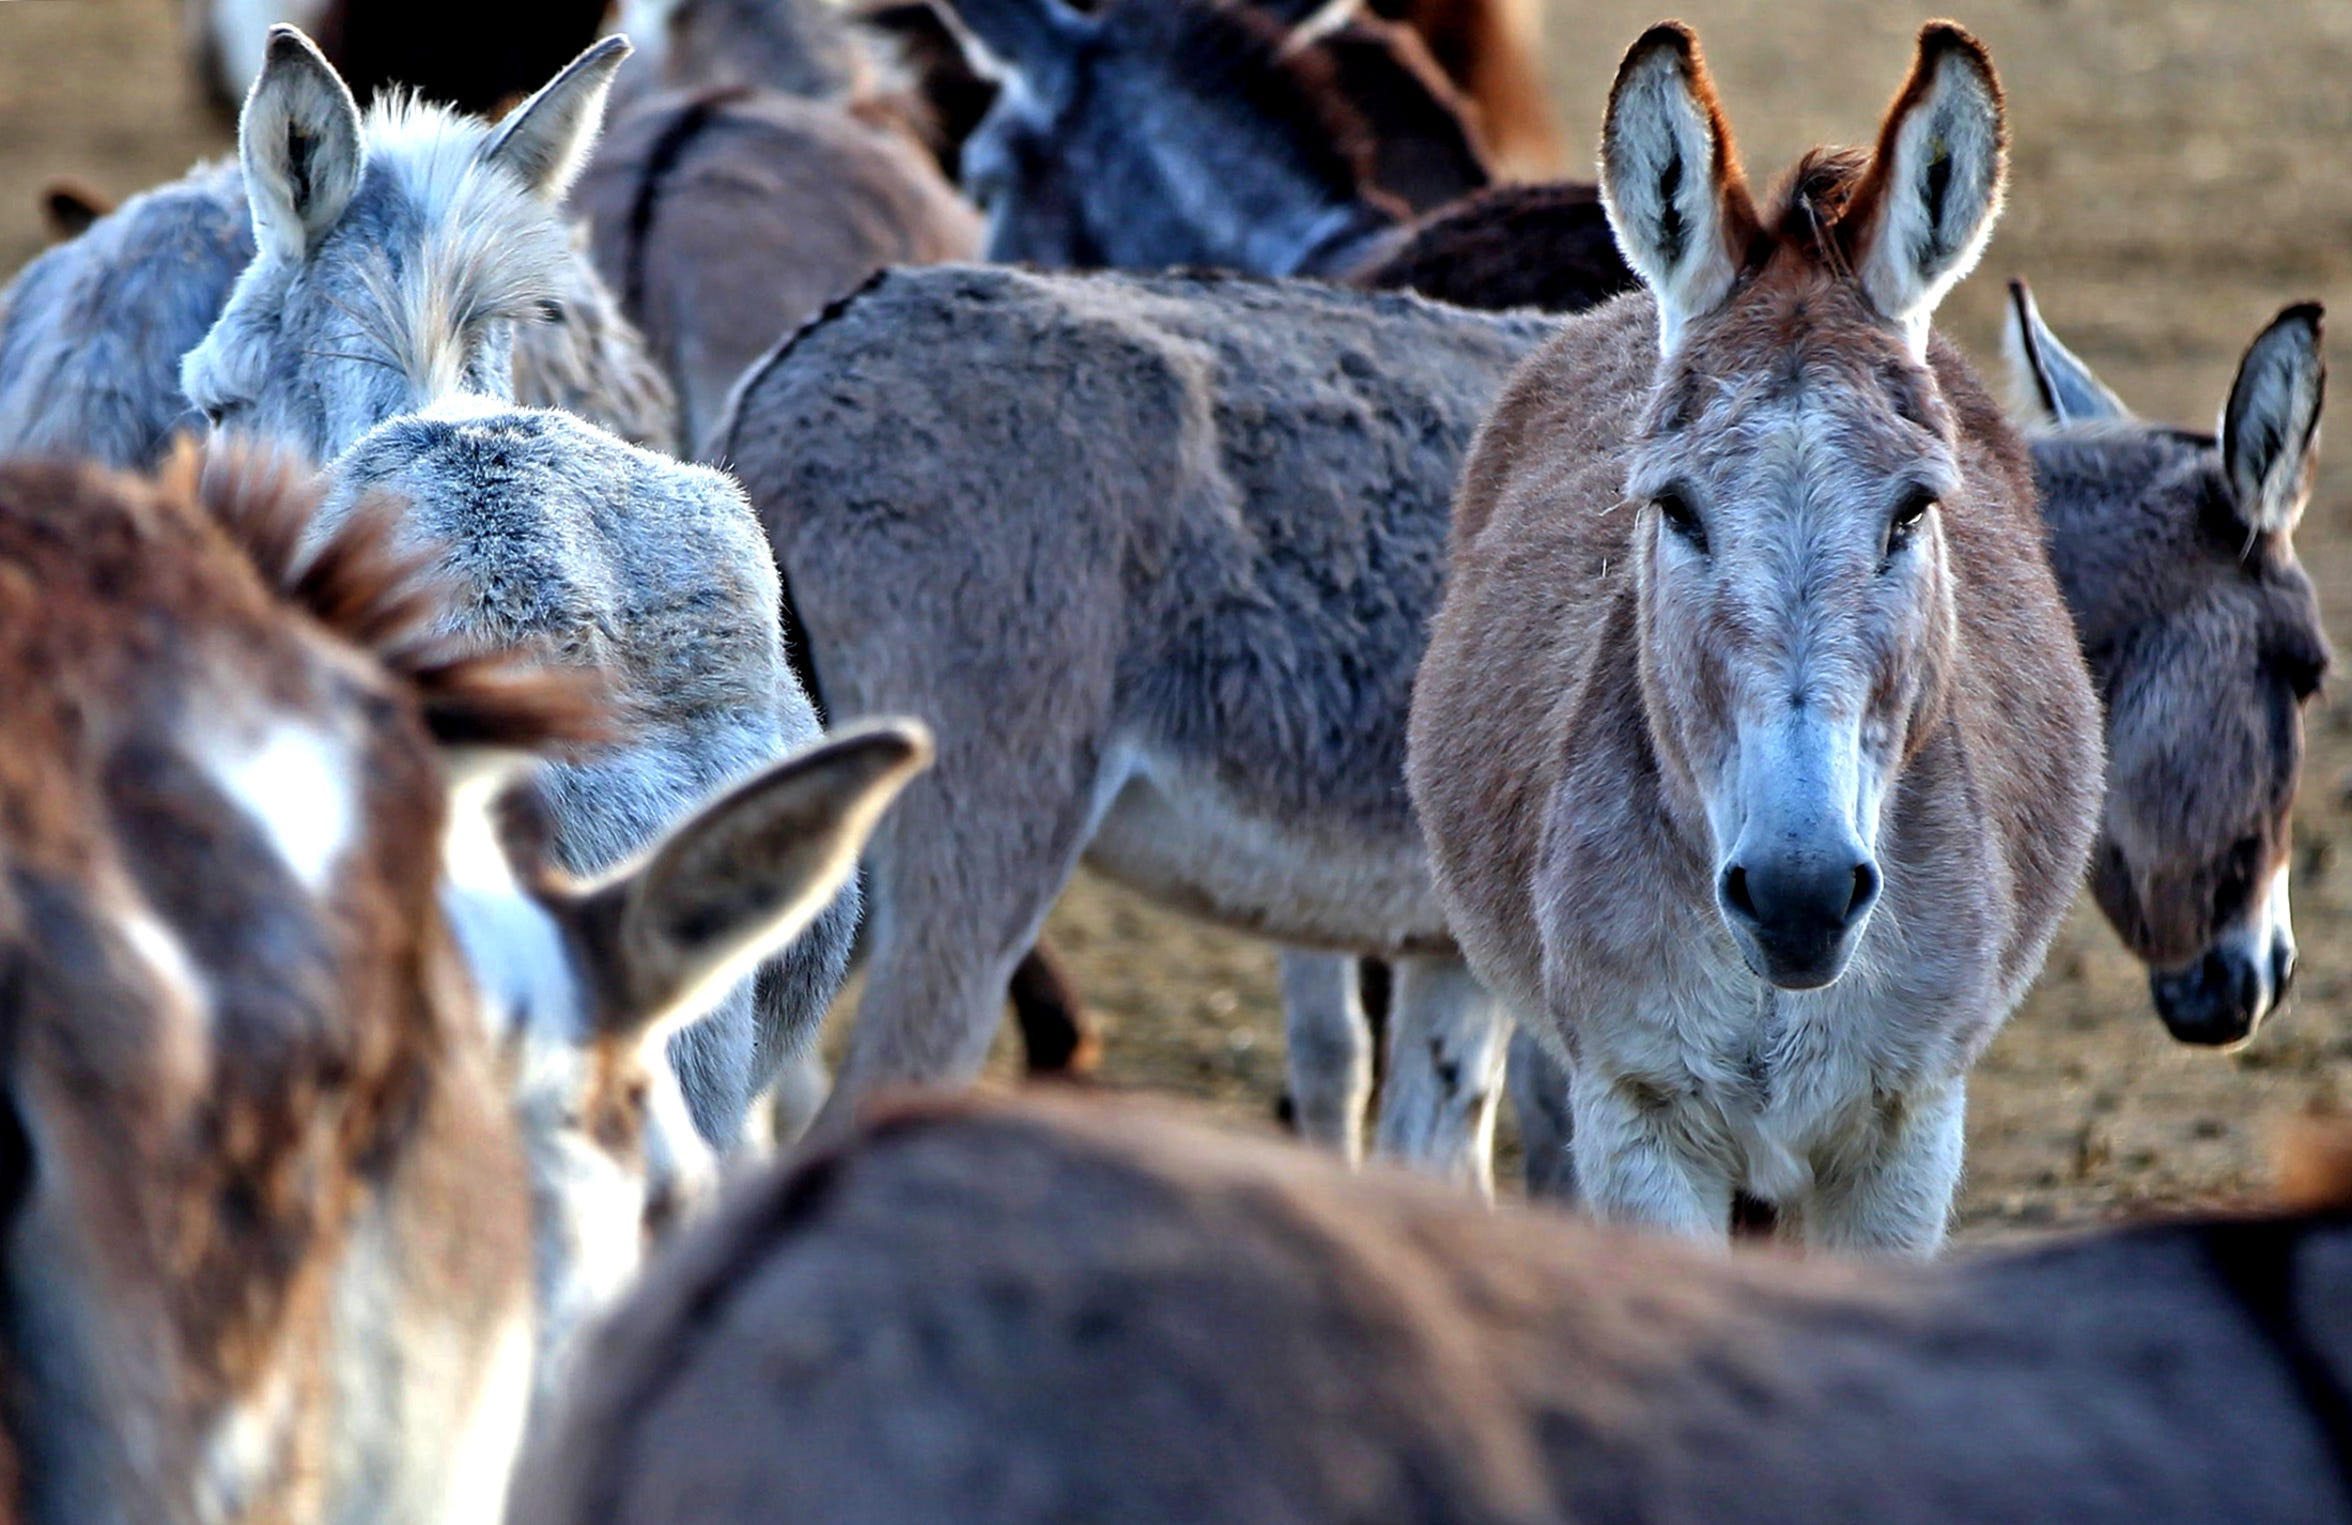 Donkeys roam an enclosure at the Peaceful Valley Donkey Rescue in San Angelo on Tuesday, Nov. 12, 2019.